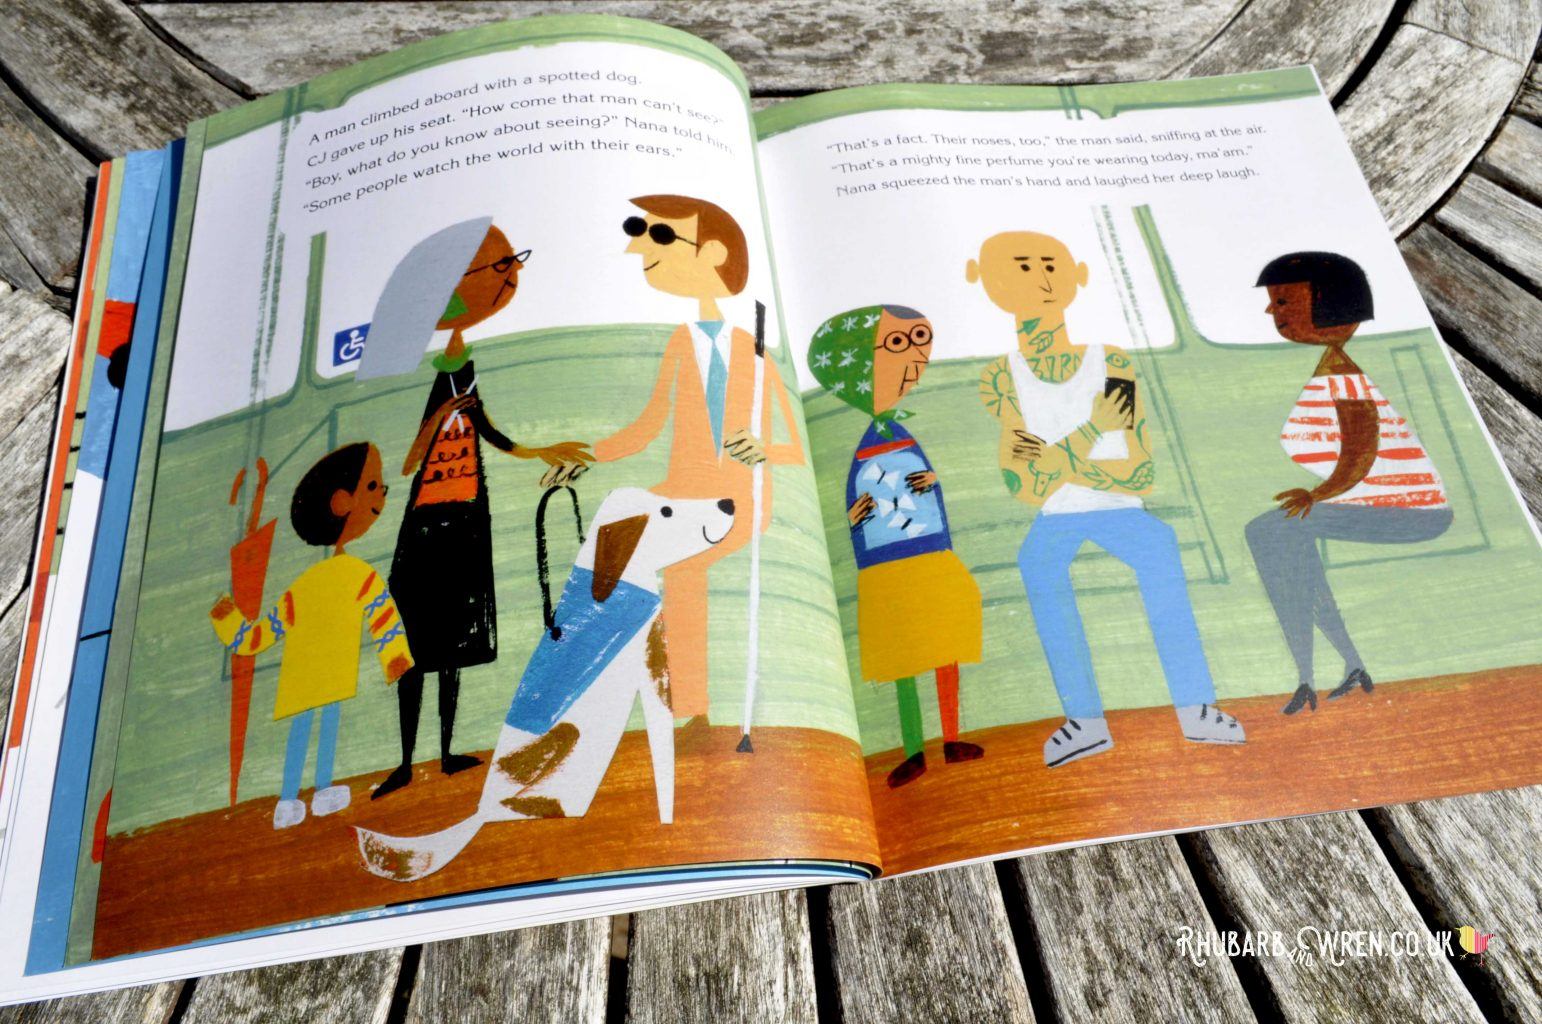 A diverse mix of passengers on the bus in Last Stop on Market Street - picture book by Matt de la Pena and Christian Robinson